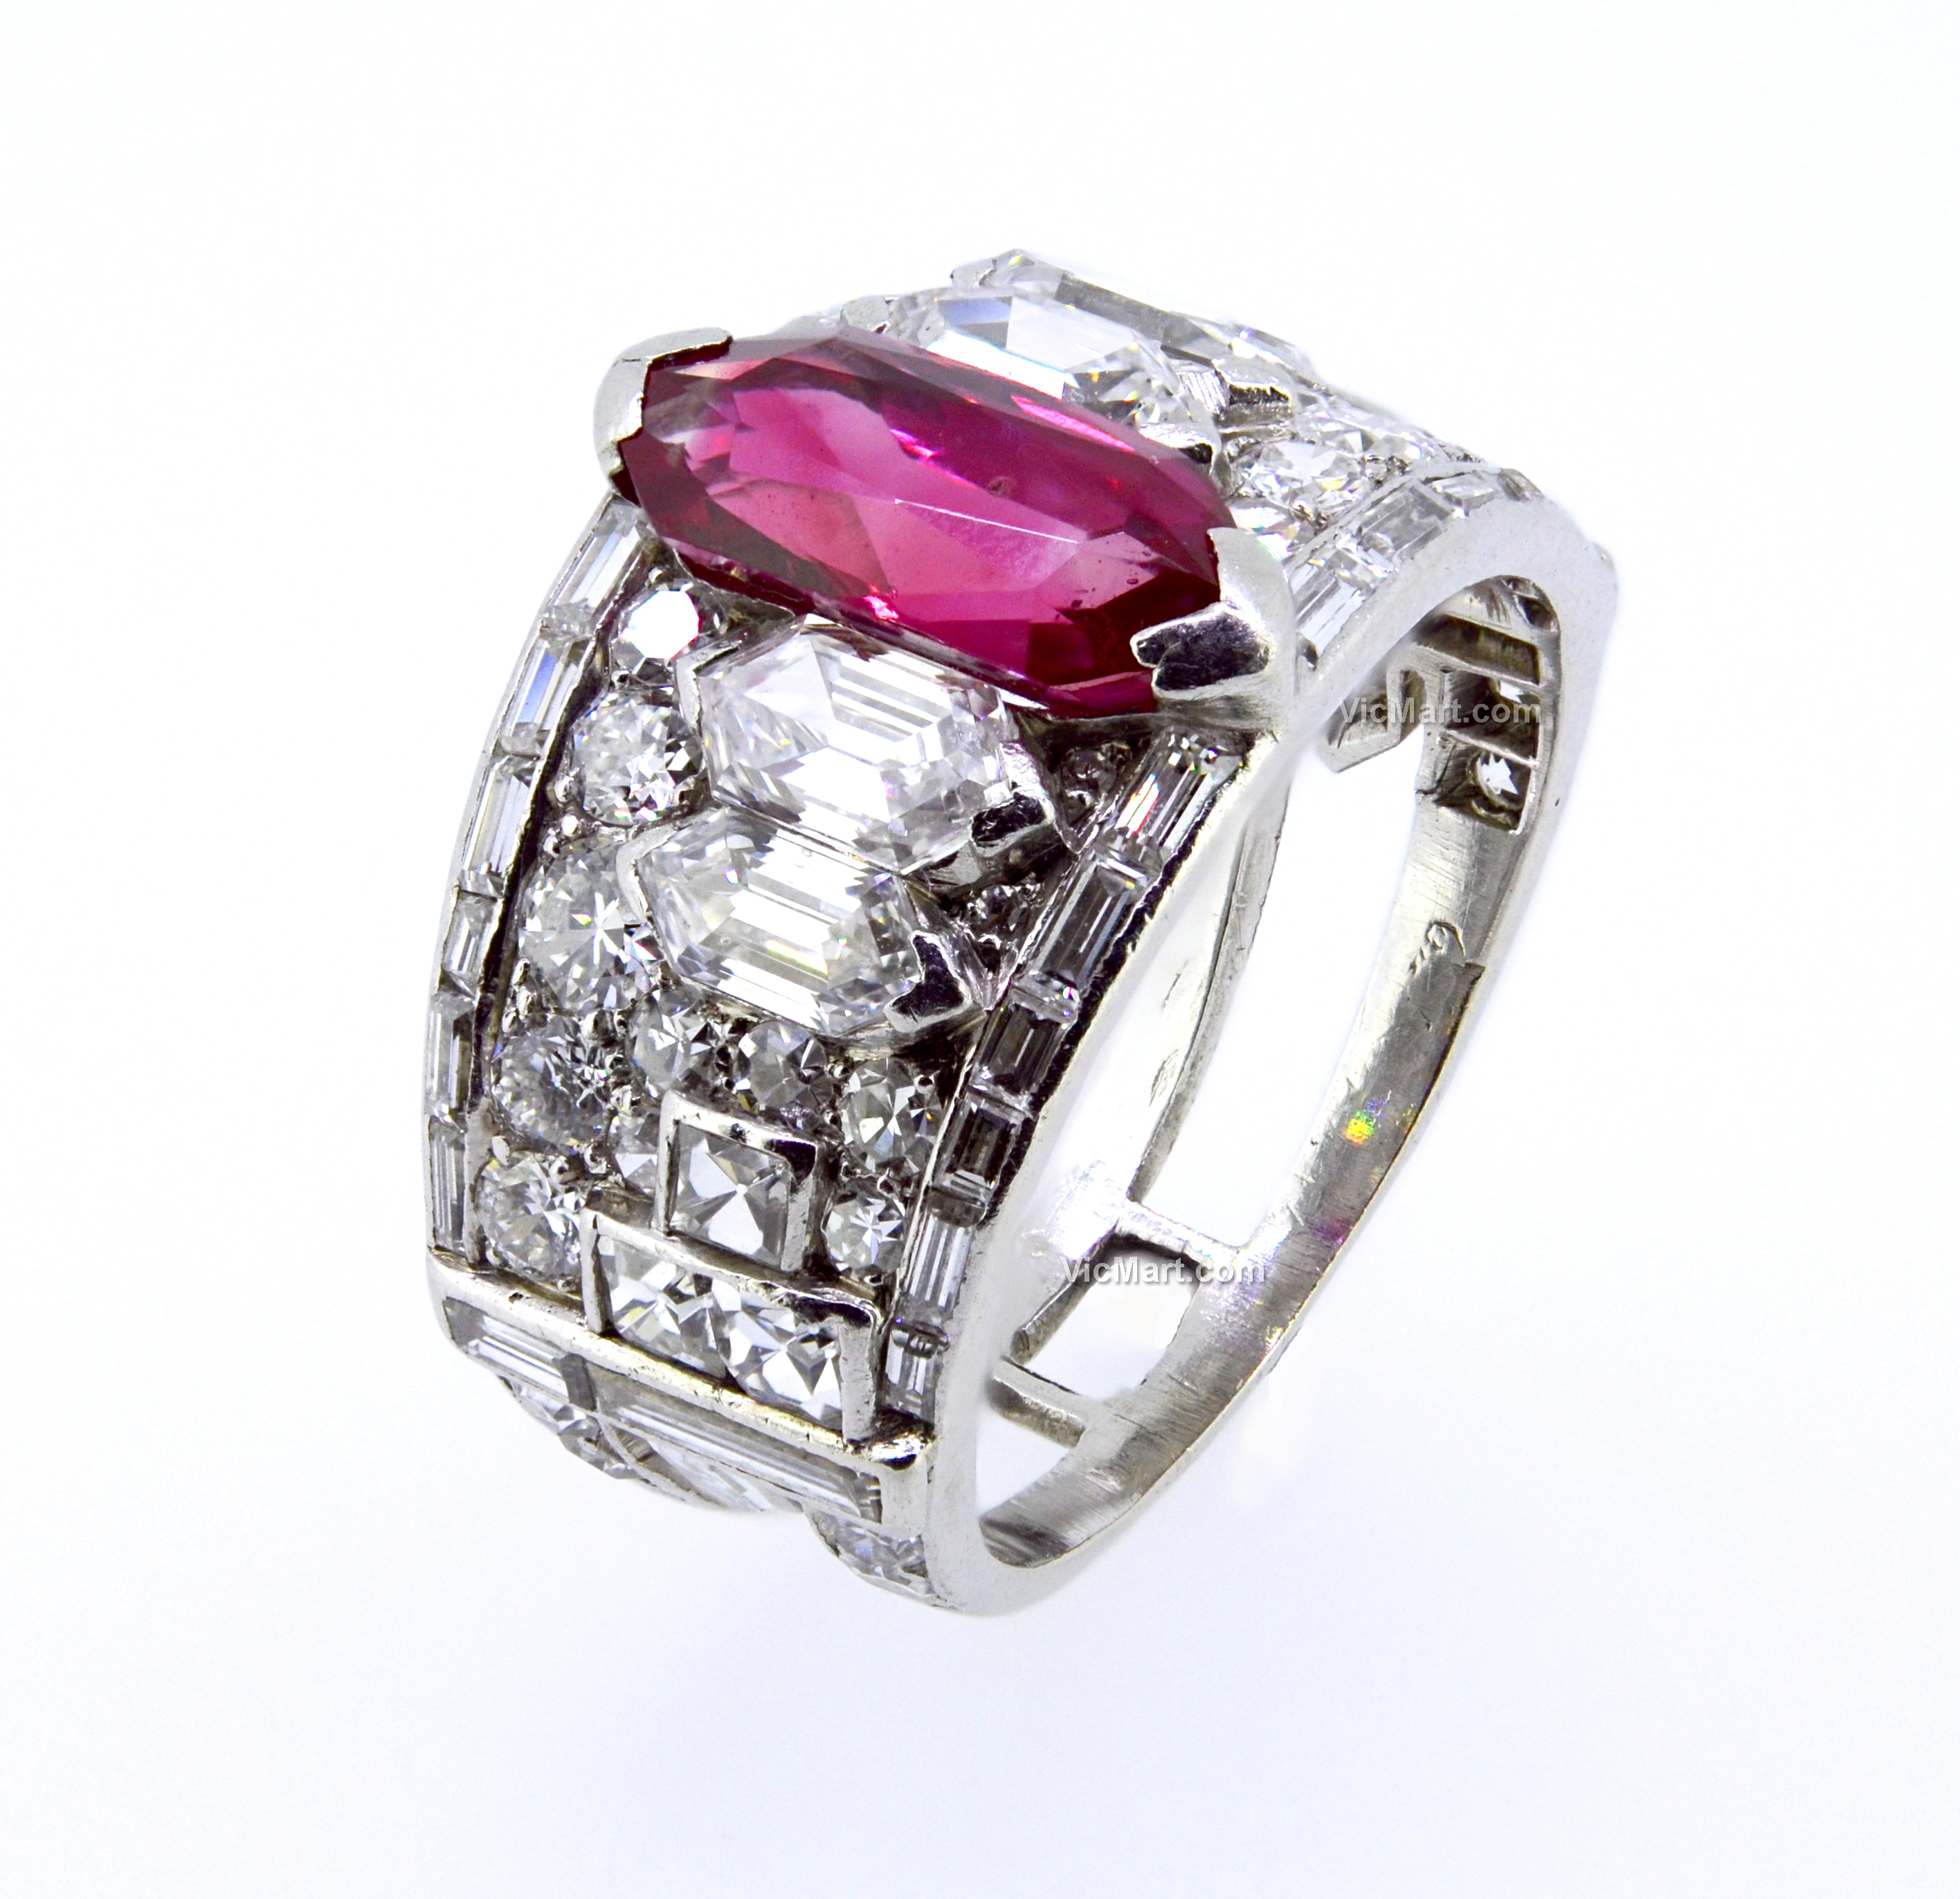 CARTIER Art Deco Ruby and Diamond Ring c 1925 in > Art ...